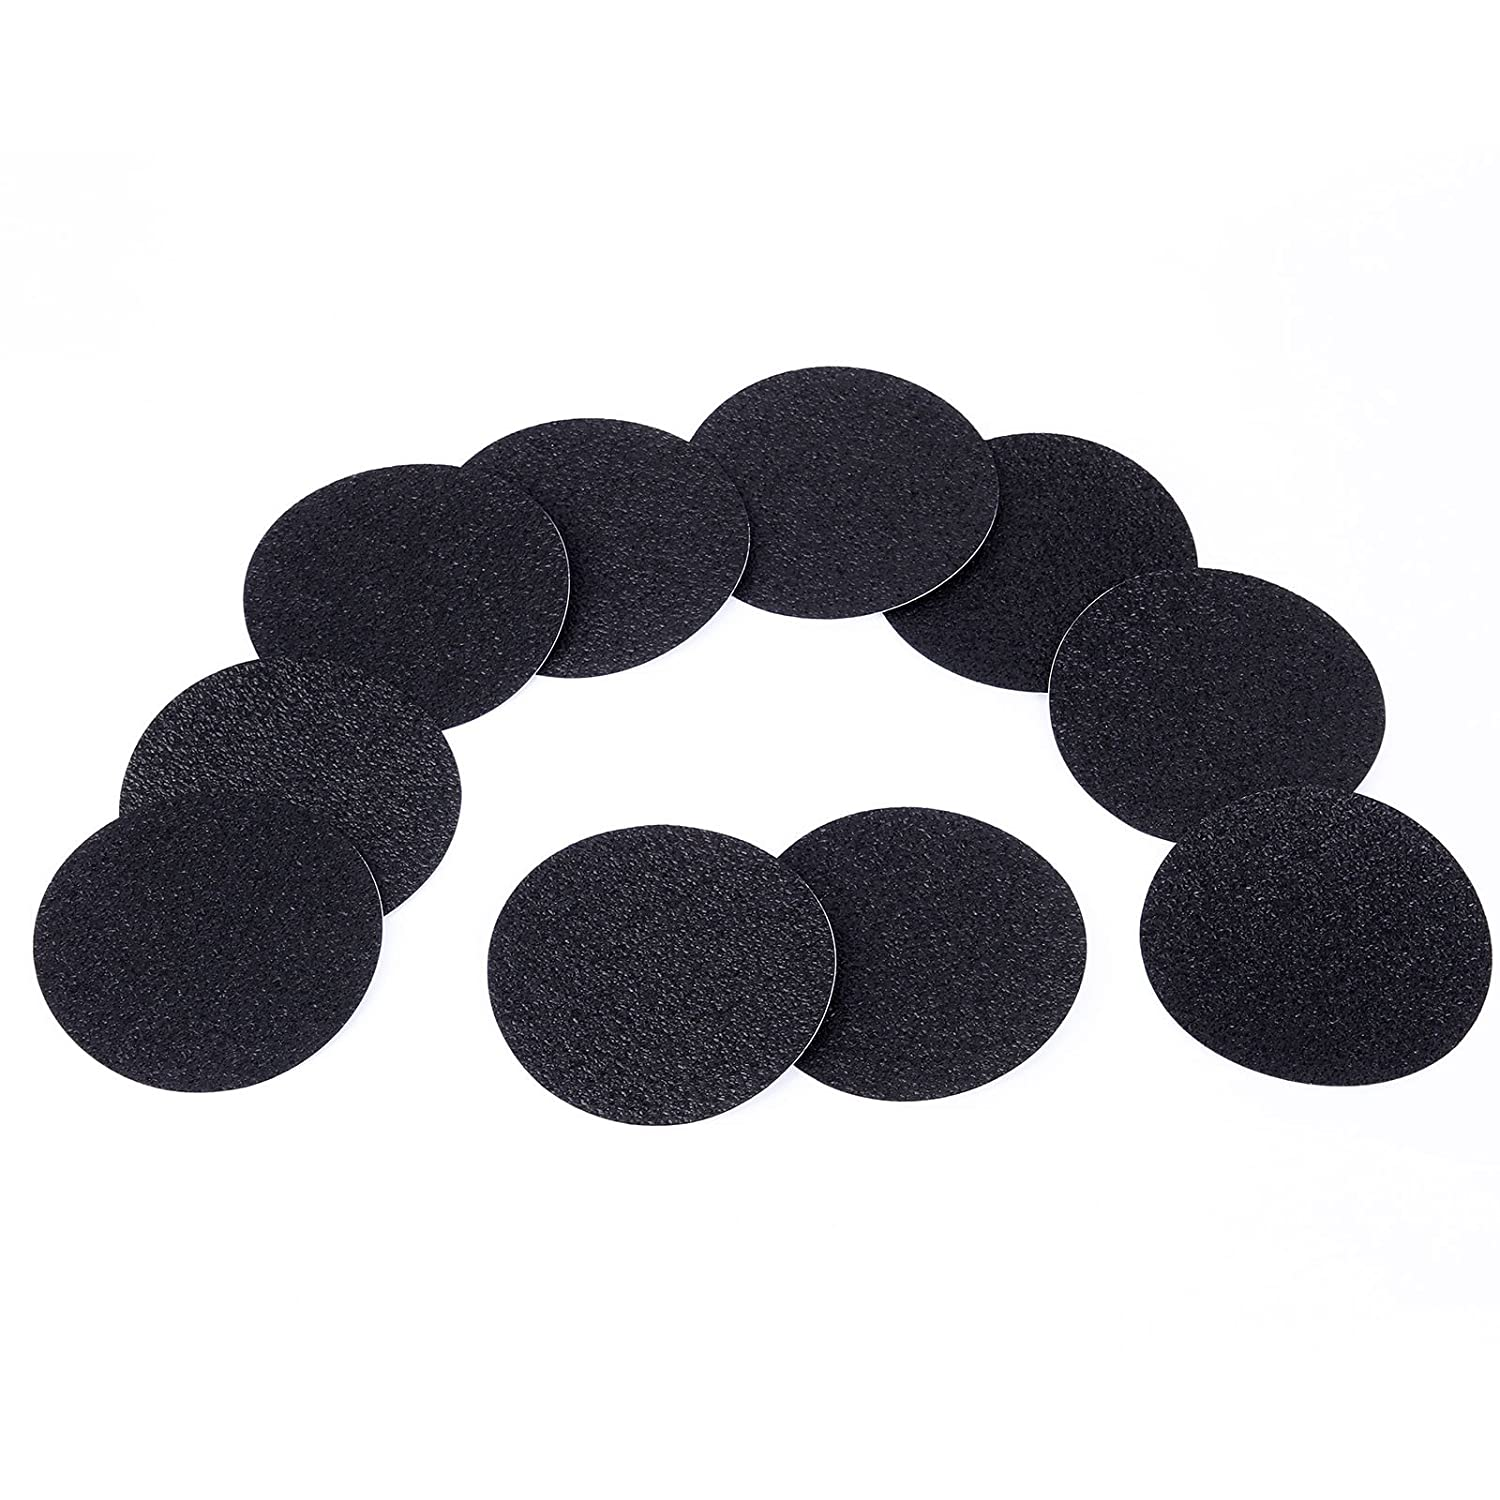 10 PCS Black Non Slip Anti Skid Bath Shower Safety Mat Strong Textured Stickers Floor Safety Anladia